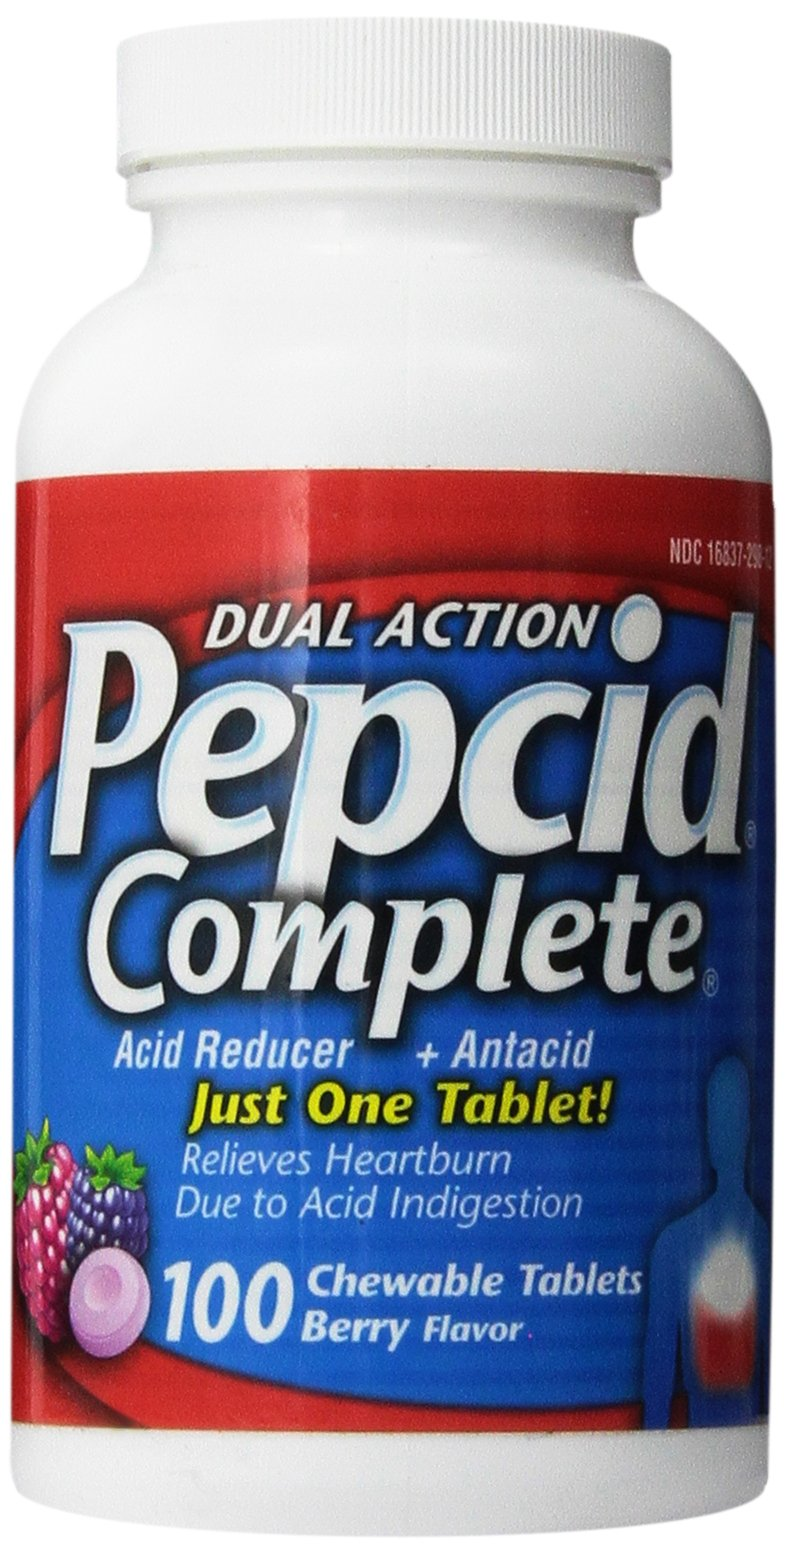 Pepcid Complete Dual Action Acid Reducer and Antacid Berry Flavored Chewable Tablets 100 Count Bottle by Pepcid